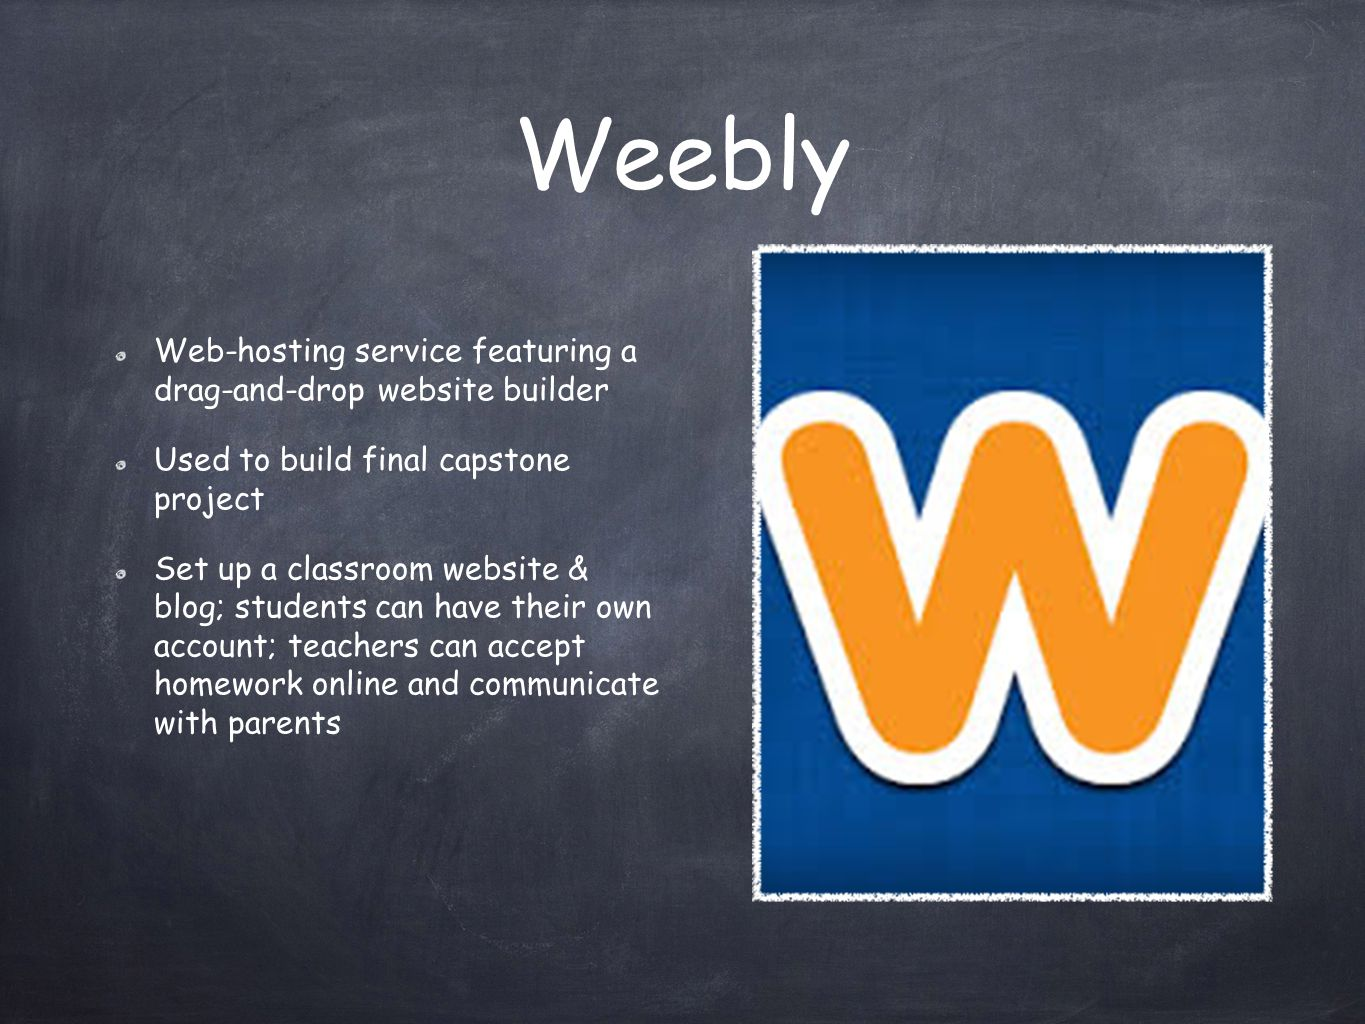 Weebly Web-hosting service featuring a drag-and-drop website builder Used to build final capstone project Set up a classroom website & blog; students can have their own account; teachers can accept homework online and communicate with parents